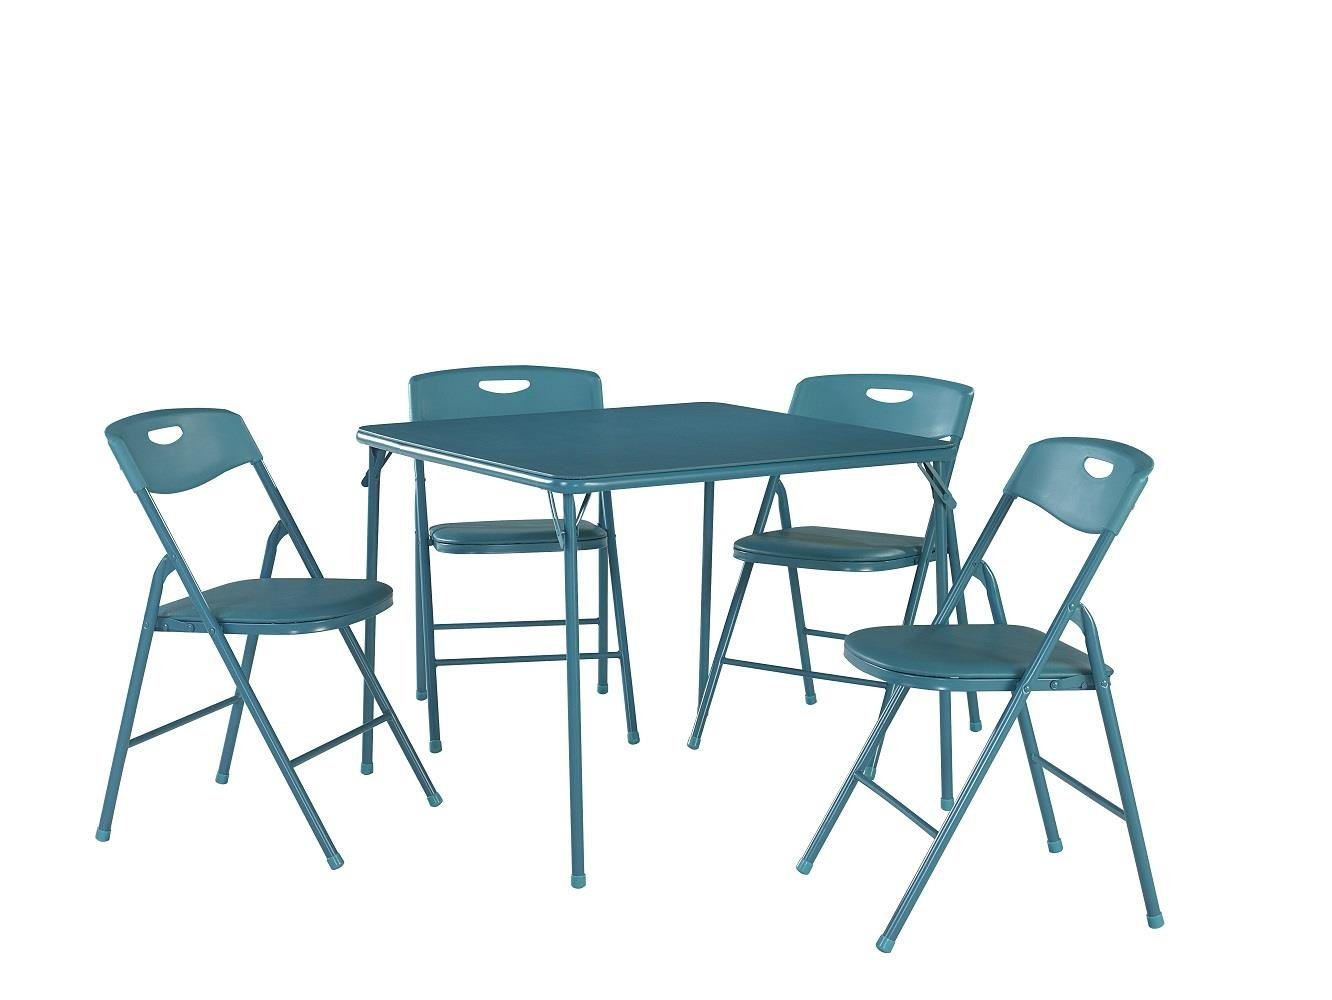 Cosco 37557TEAE 5-Piece Folding Table and Chair Set, Teal by Cosco